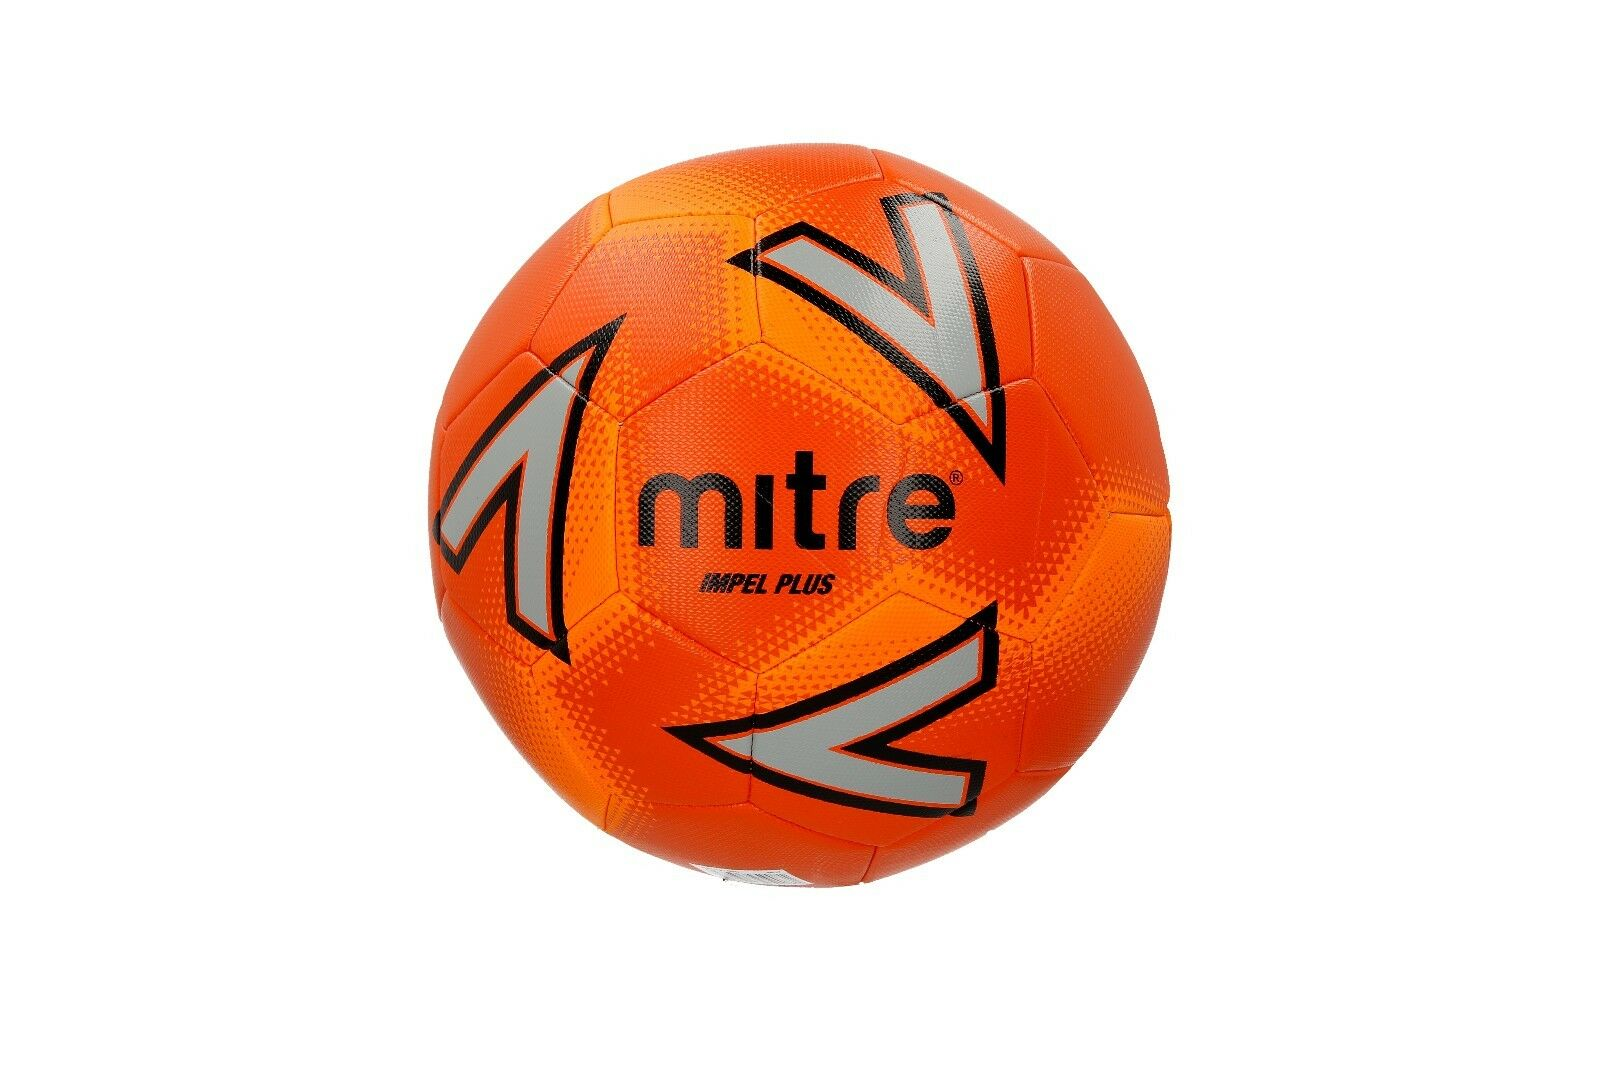 Mitre Impel PLUS 10 Orange Training Footballs including FREE FREE FREE Mesh Bag - New 2018 23c797